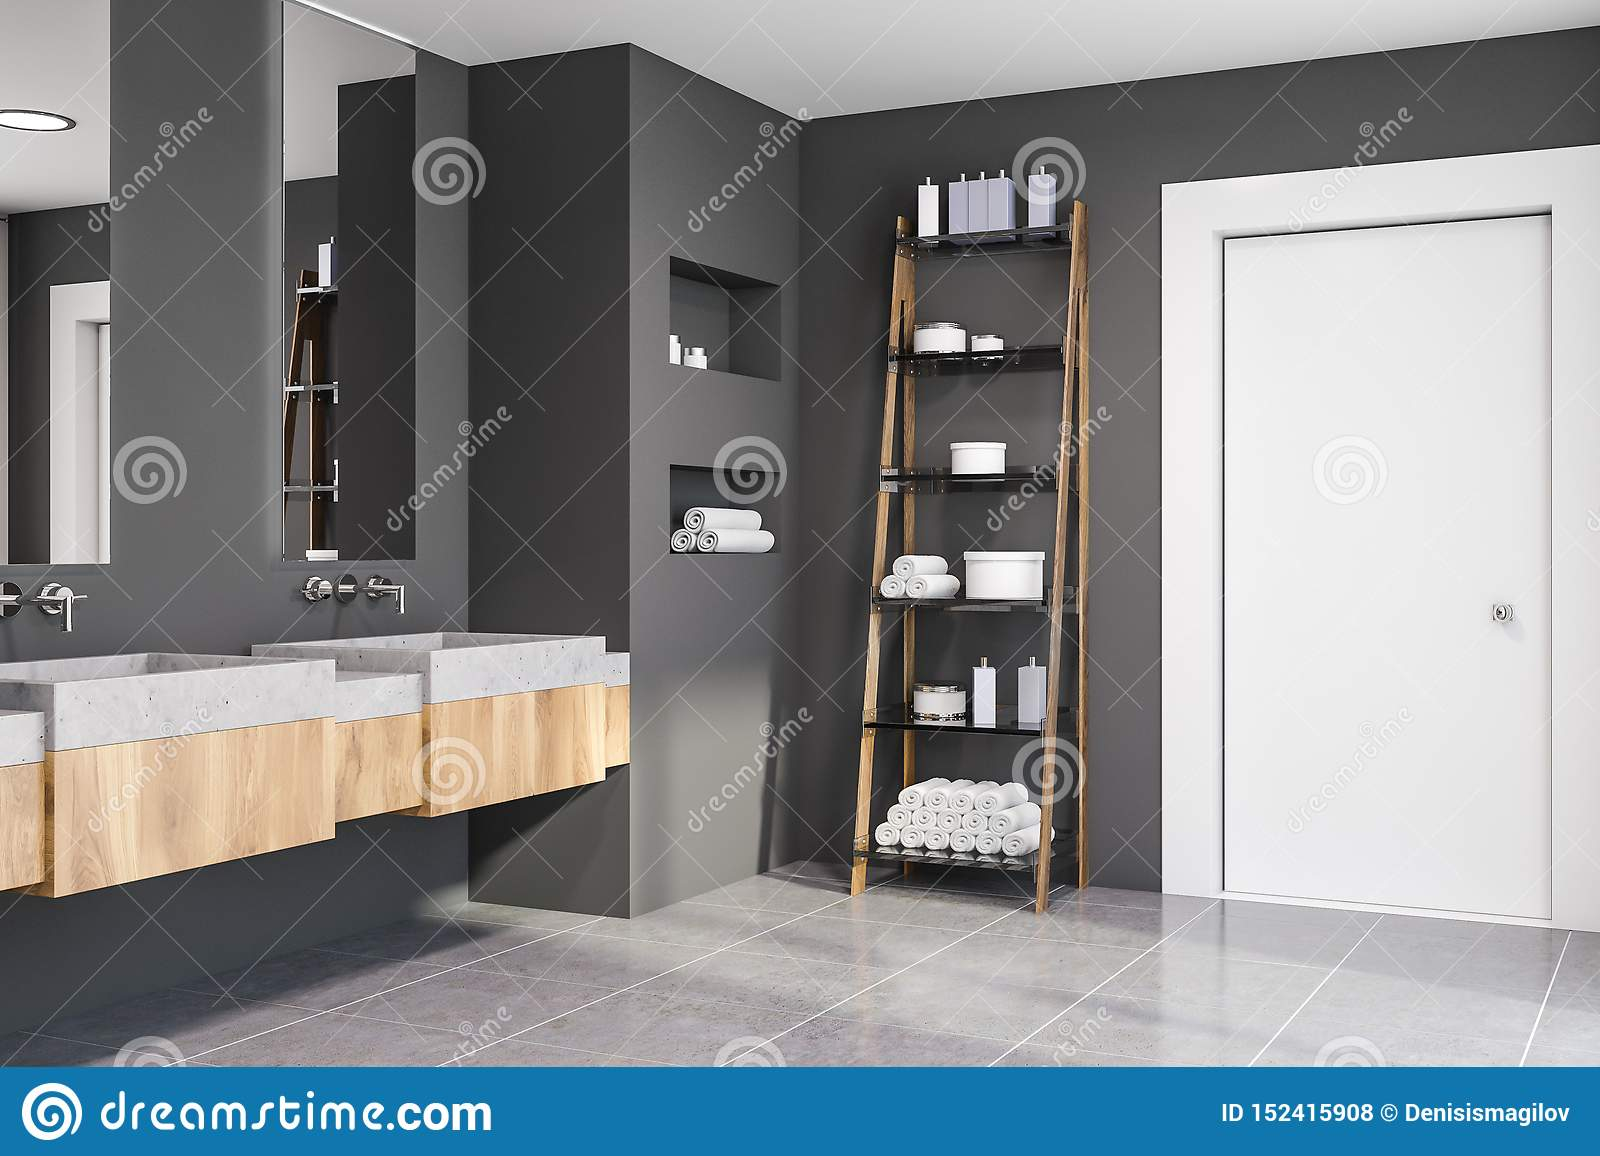 Corner Of Grey Bathroom Double Sink And Shelves Stock Illustration Illustration Of Empty Double 152415908